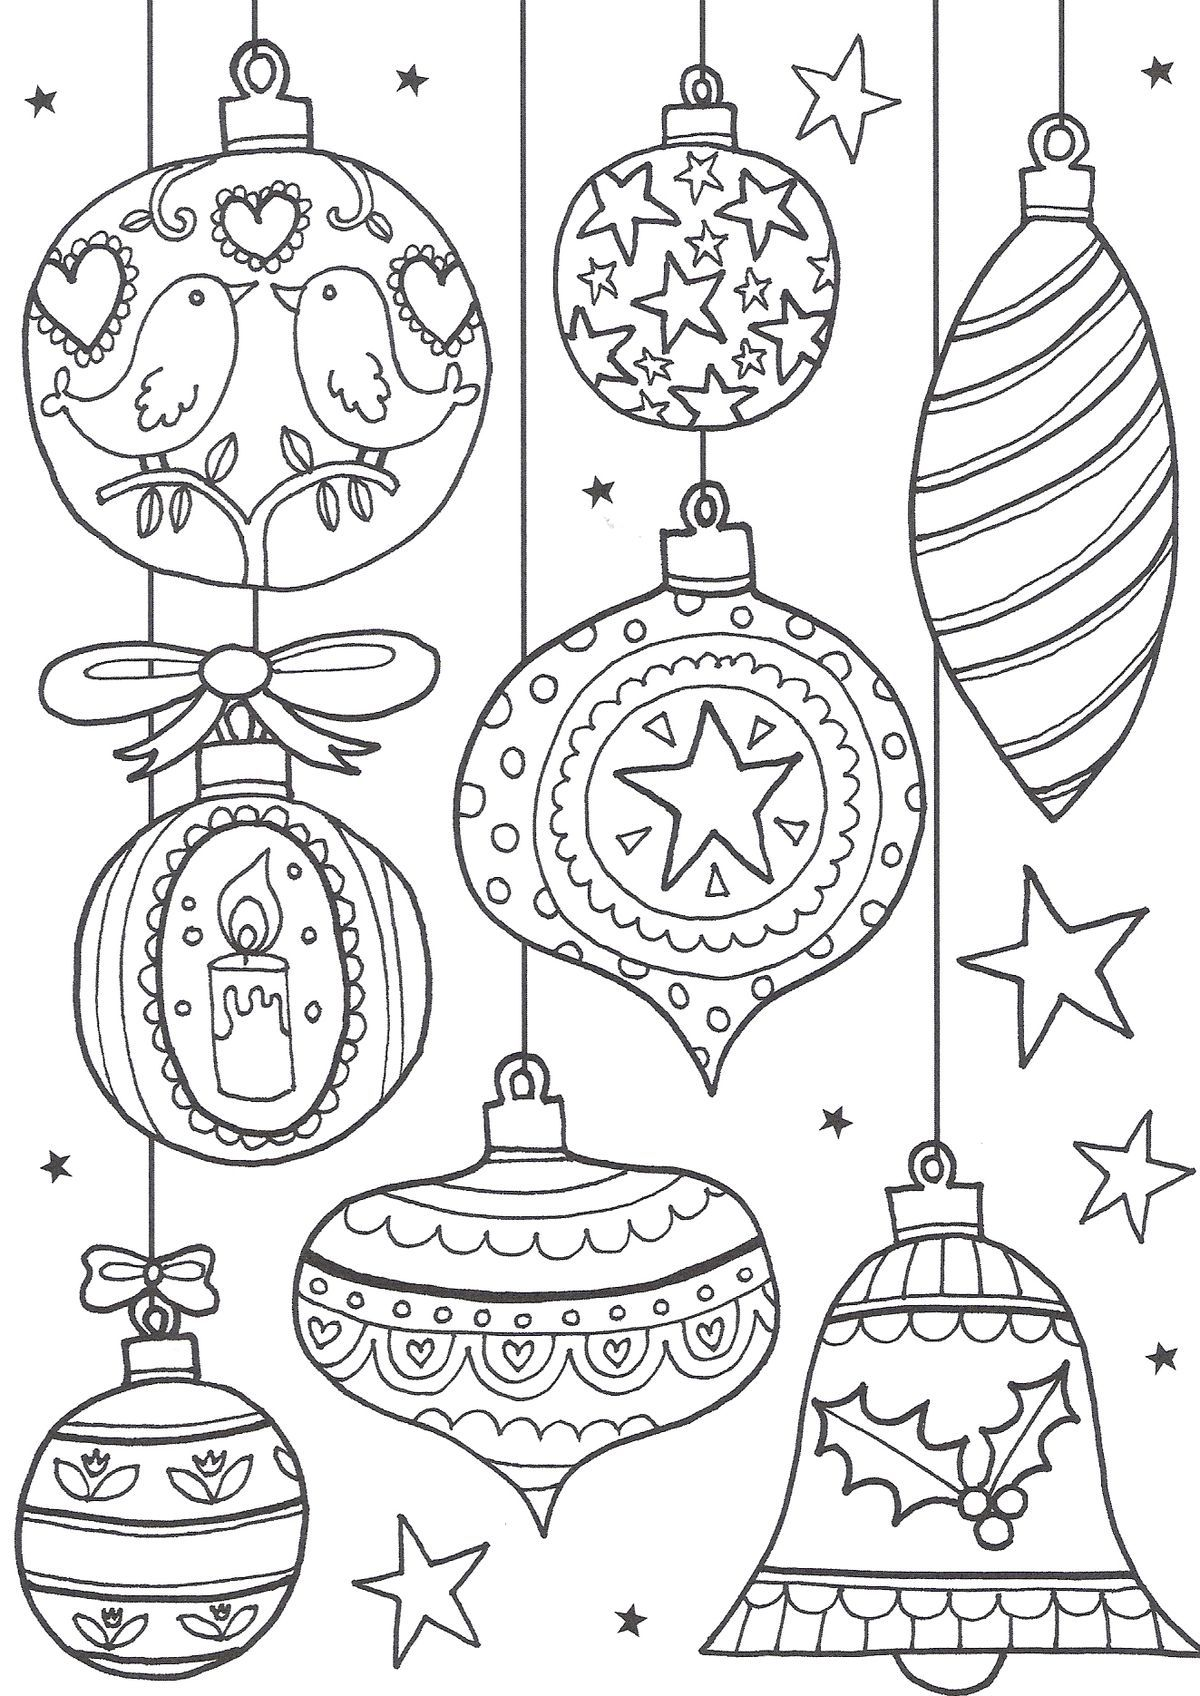 Pin by Linda Thielges on Adult coloring | Pinterest | Adult coloring ...